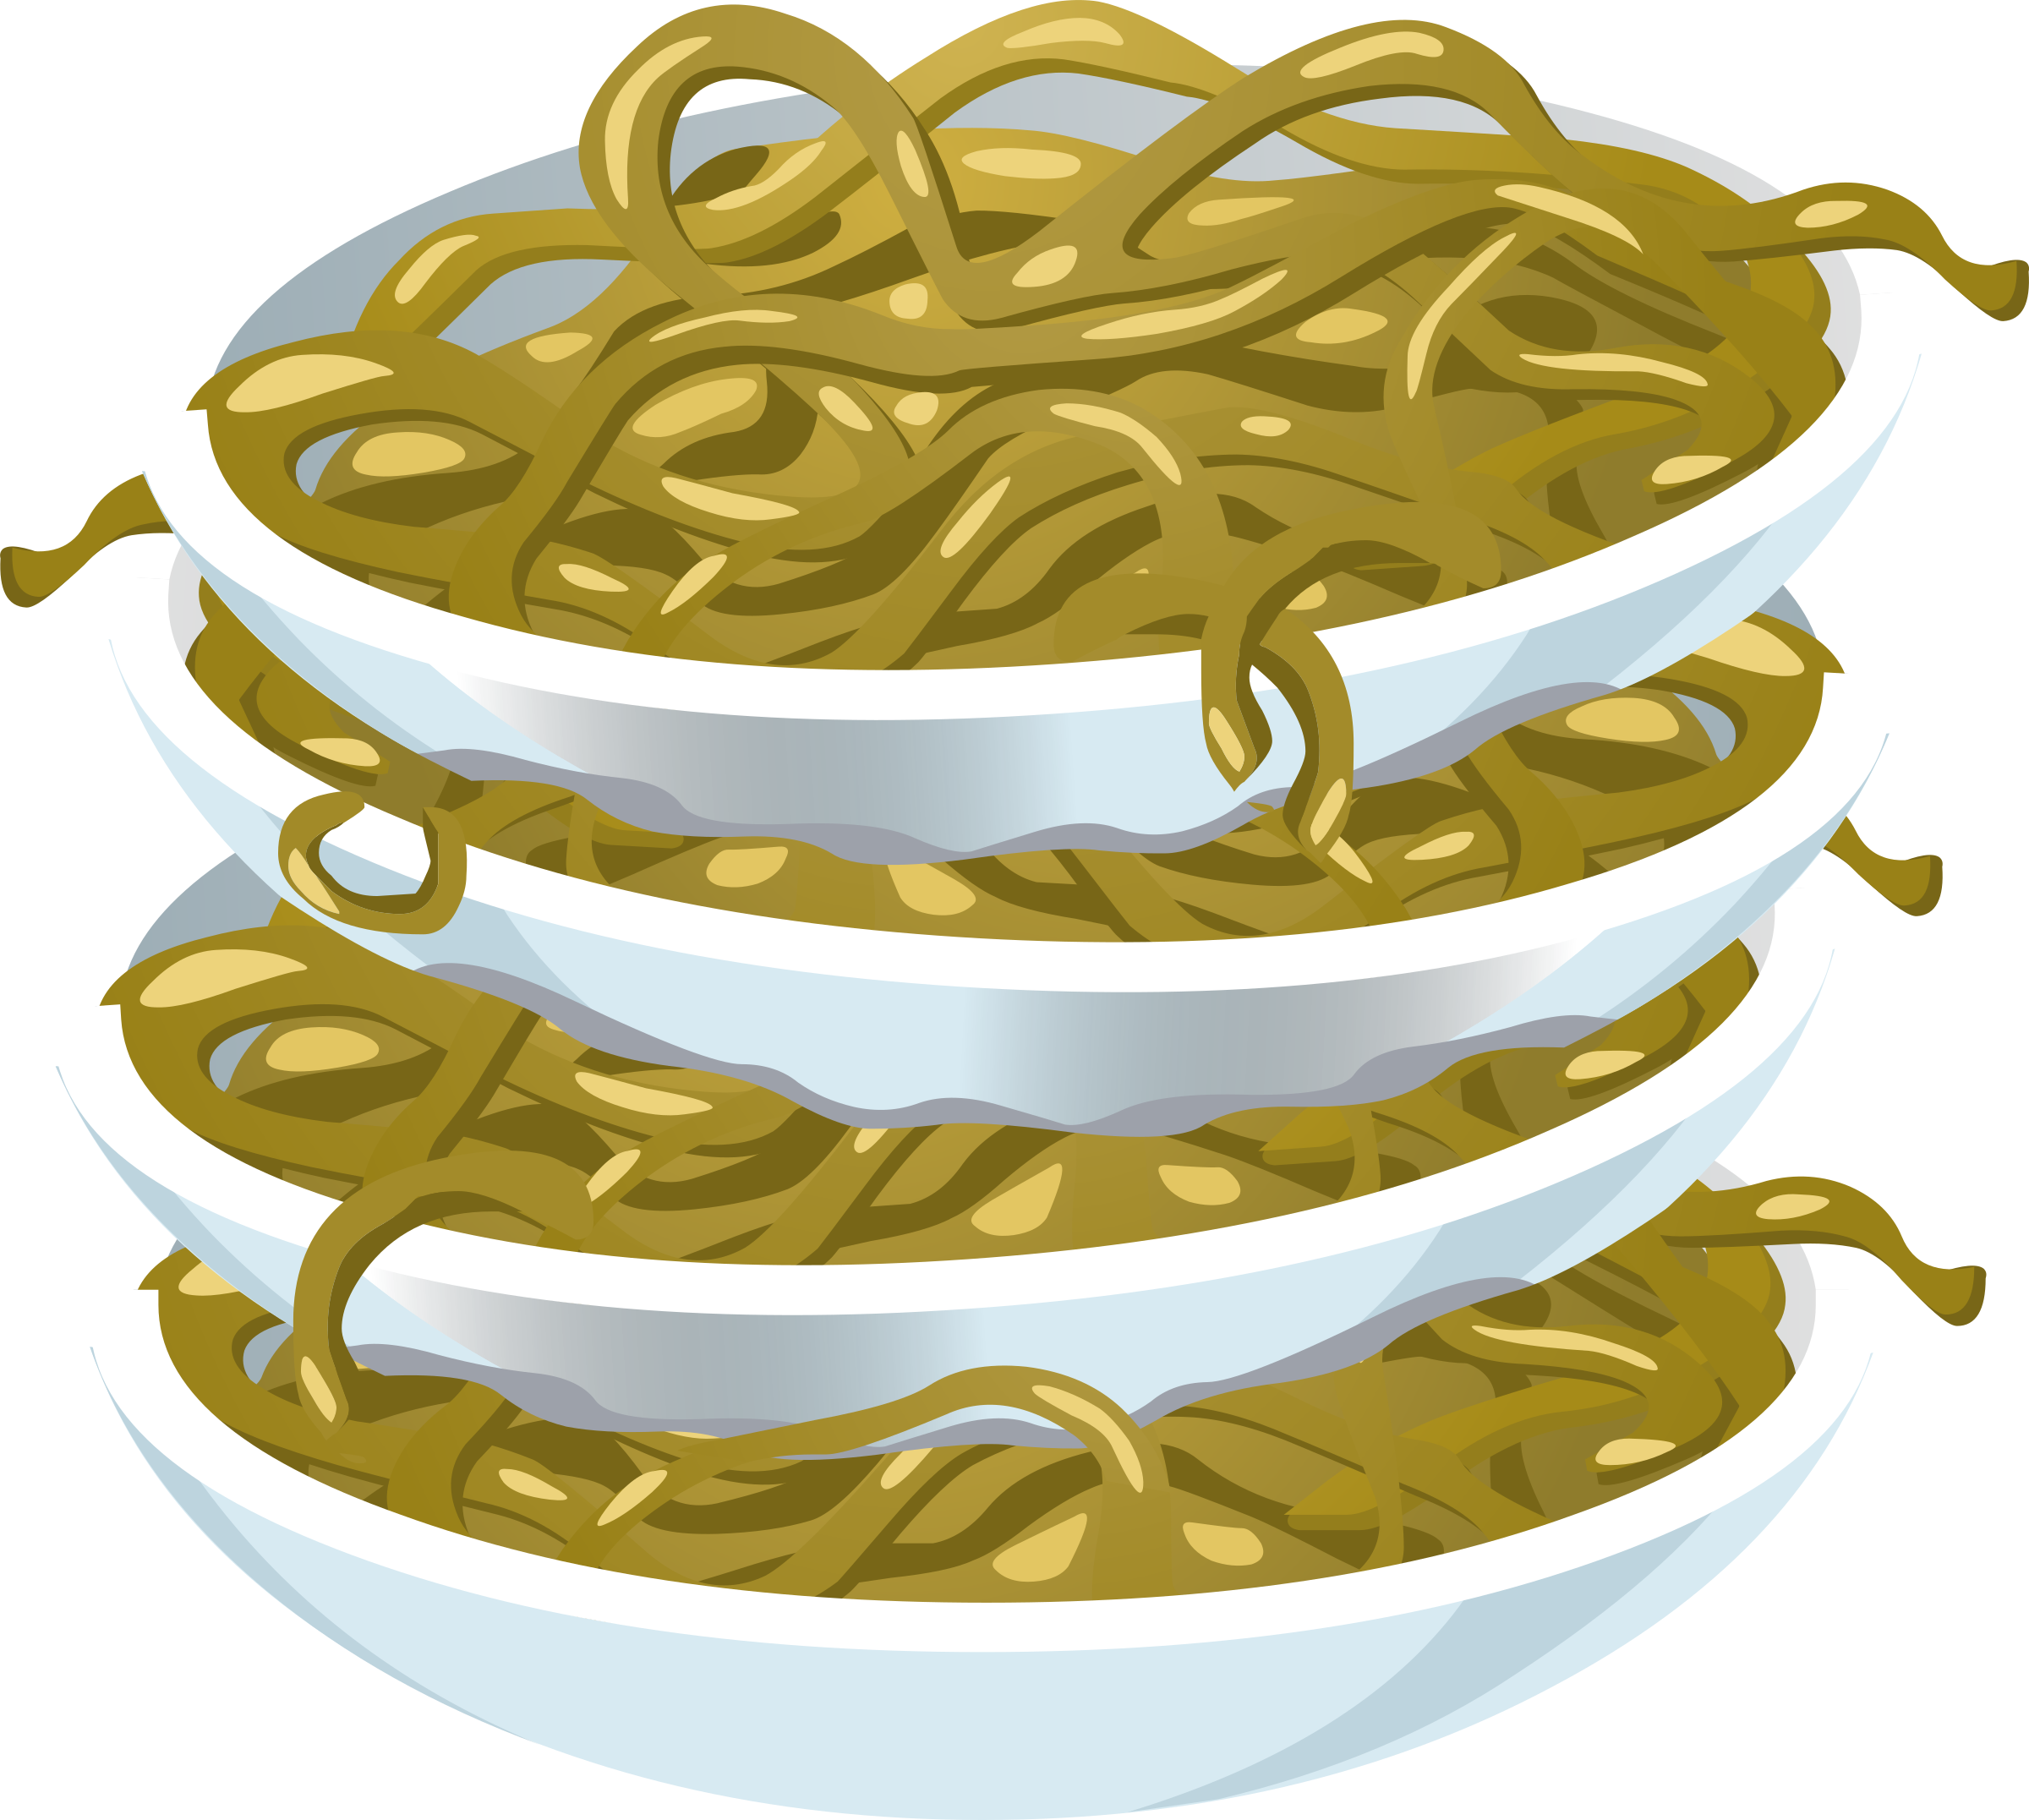 royalty free download Food fried icons png. Noodles clipart illustration